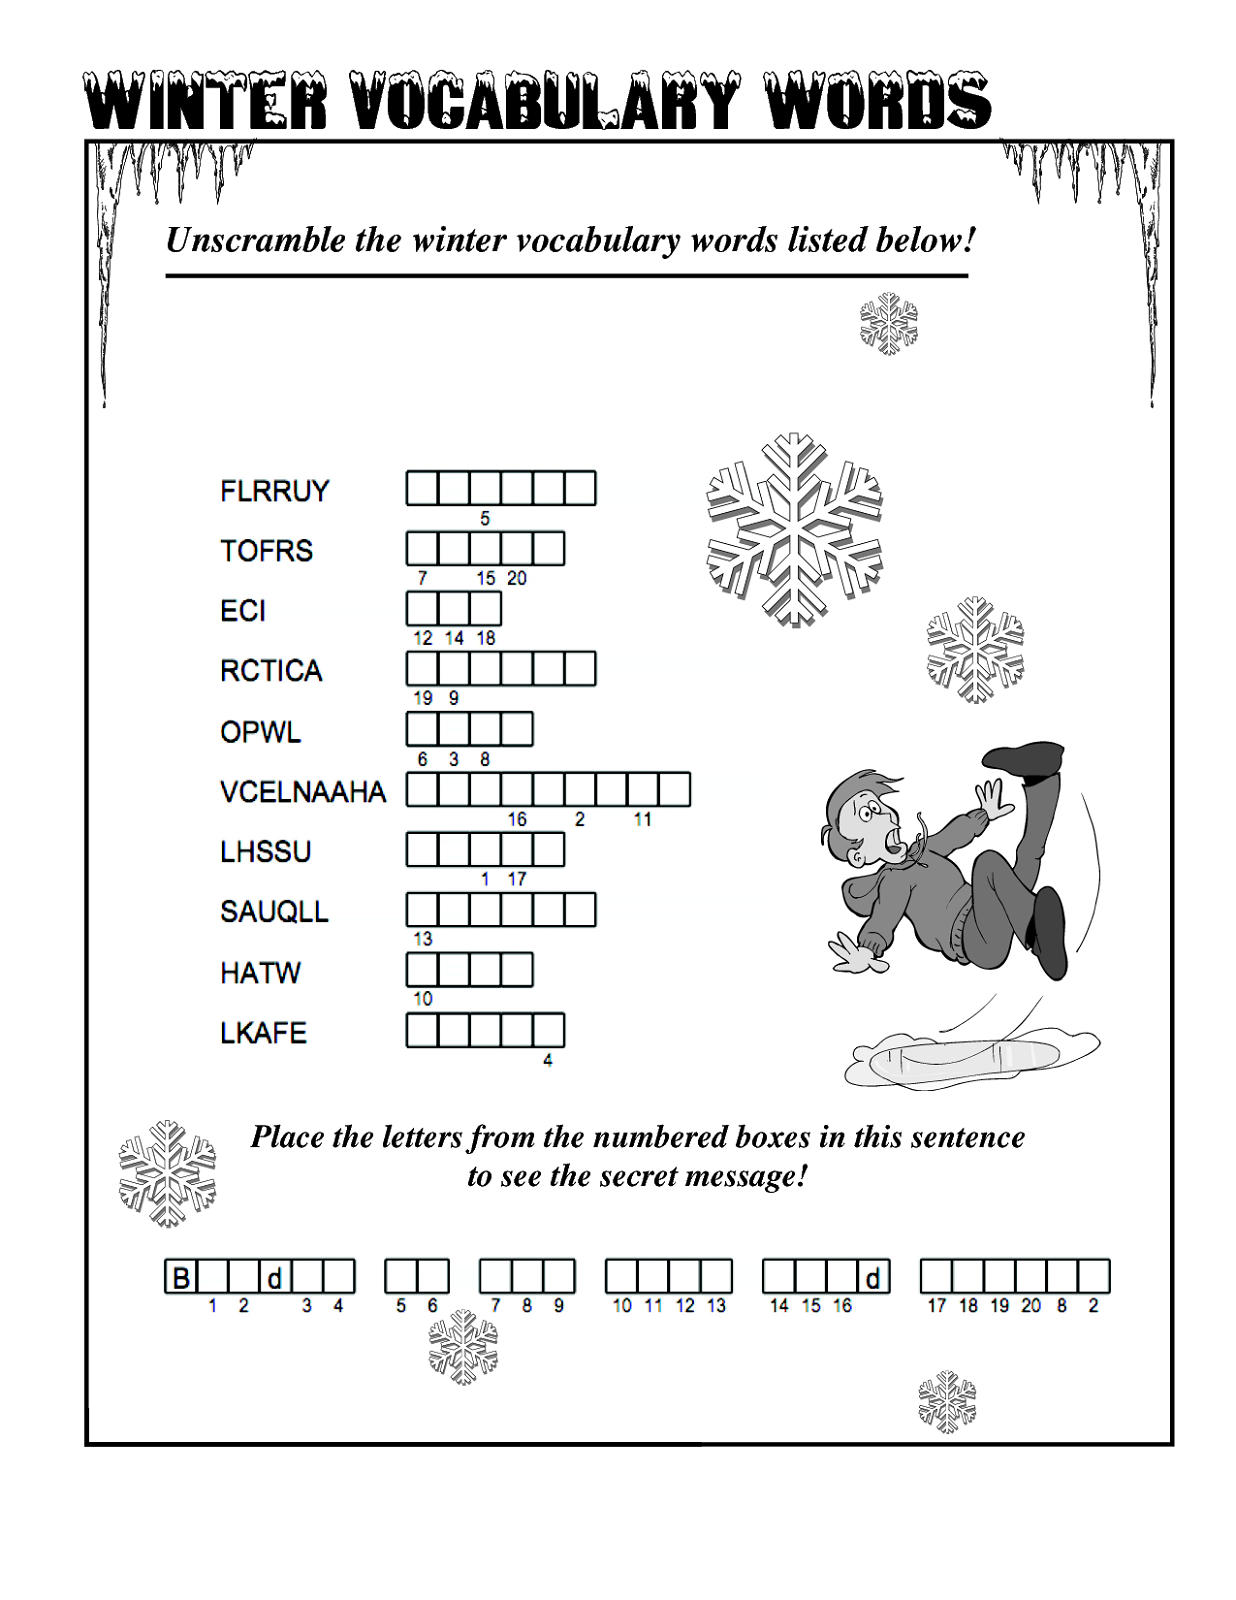 word-scramble-worksheet-winter